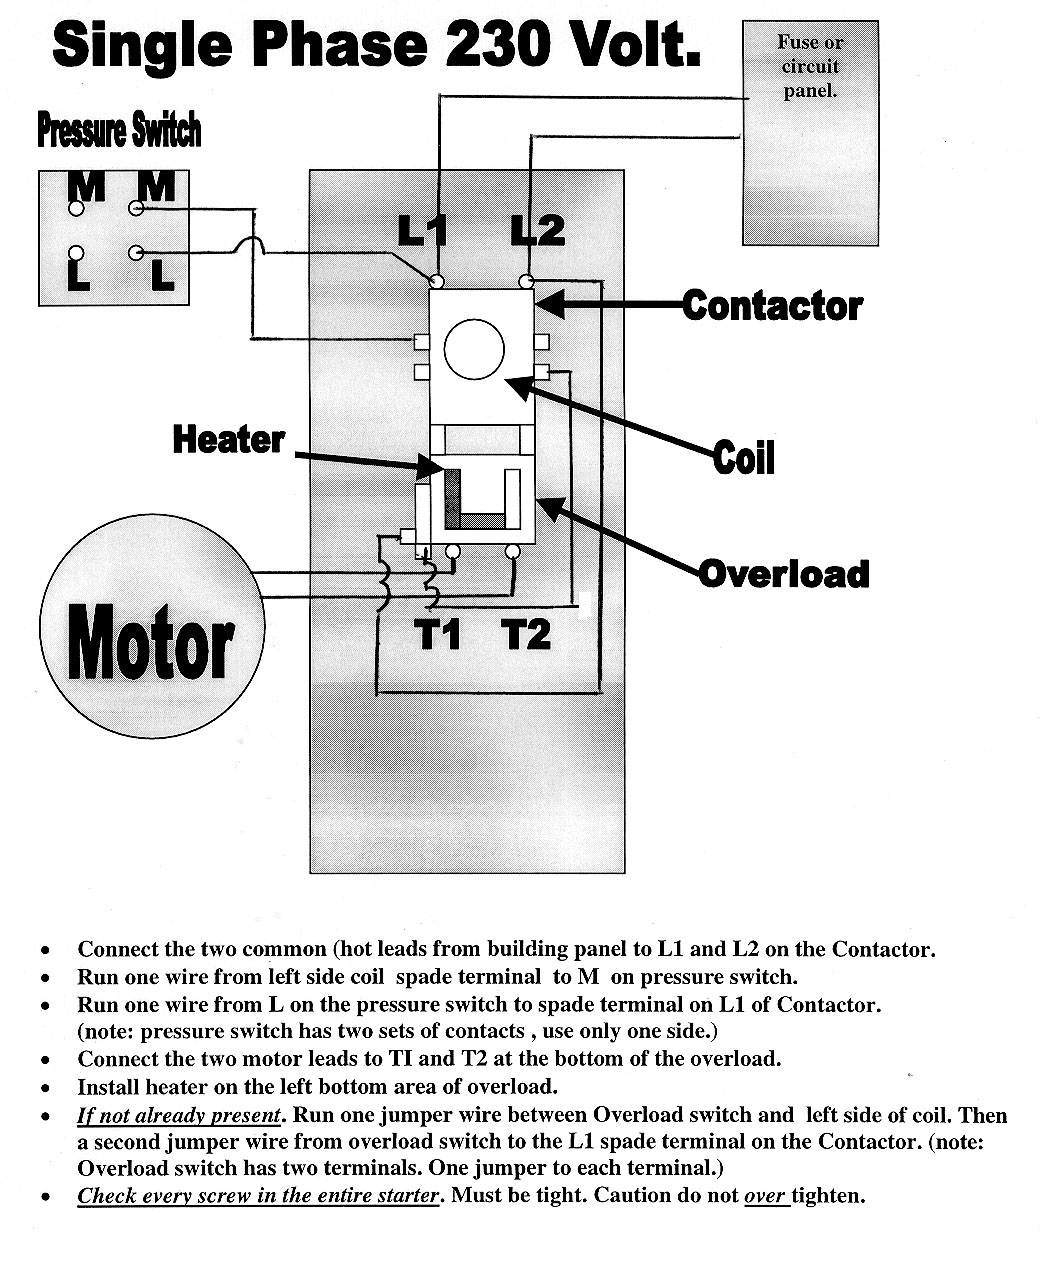 Cool emerson psc motor wiring diagram pictures inspiration the great psc motor wiring diagram photos everything you need to know asfbconference2016 Images